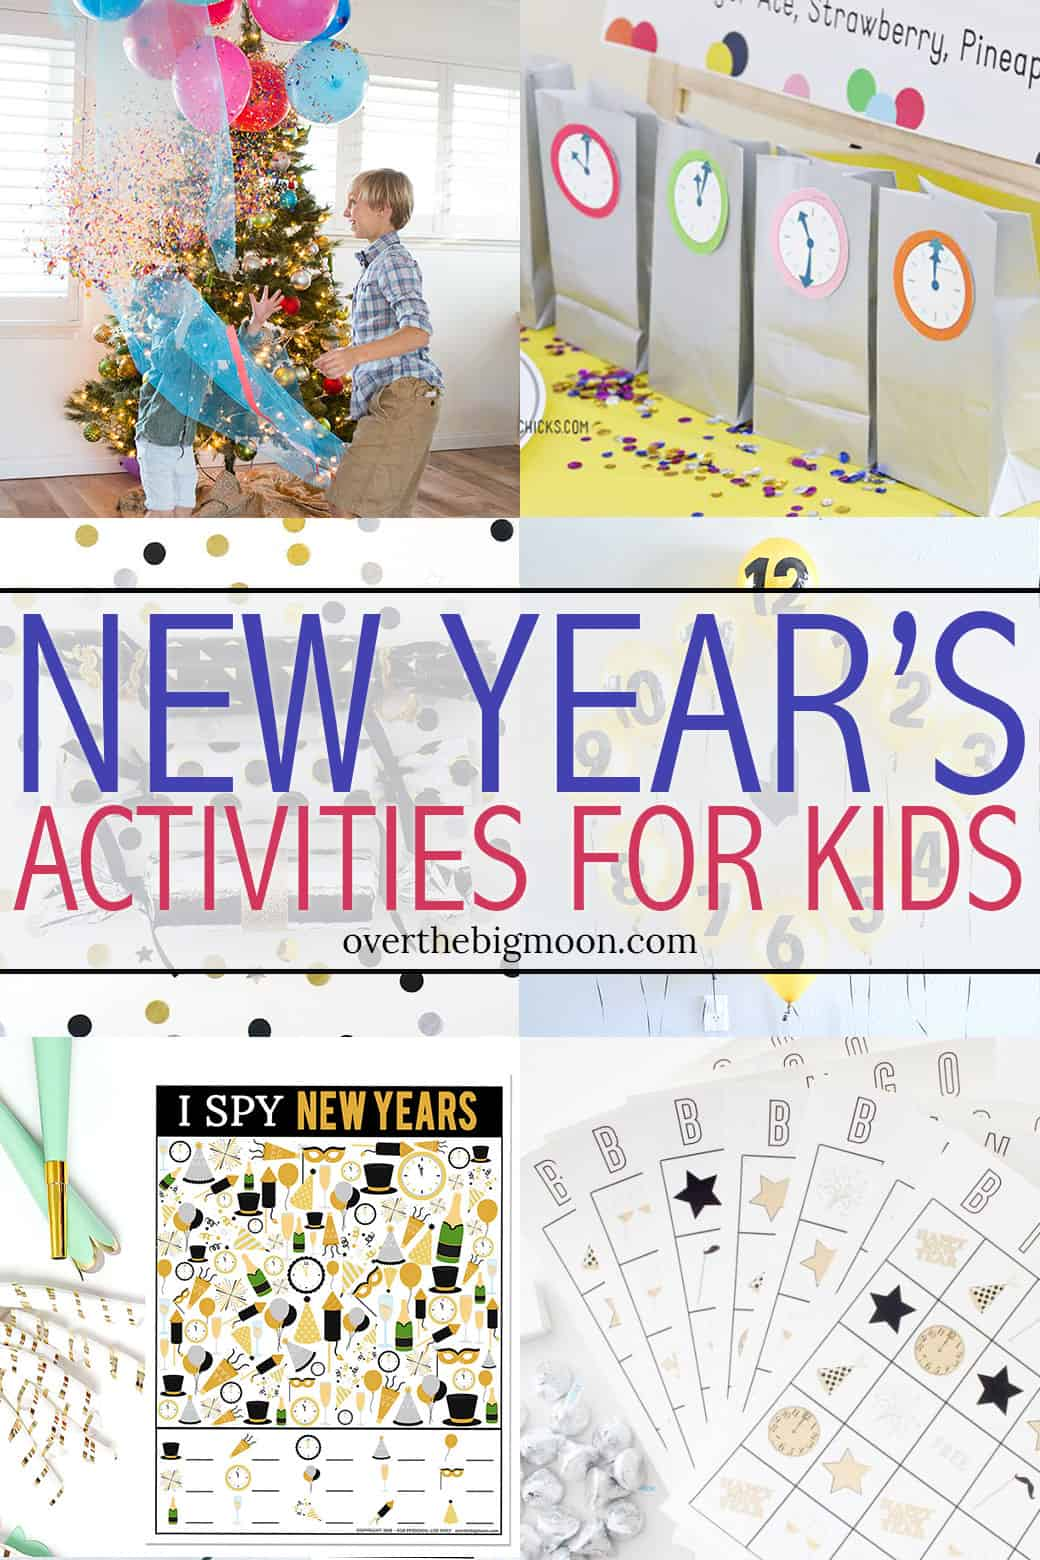 Looking for some fun activities for the family to do on New Year's Eve? Look no further! I've got a collection of crafts, activities, games and printable! From overthebigmoon.com!